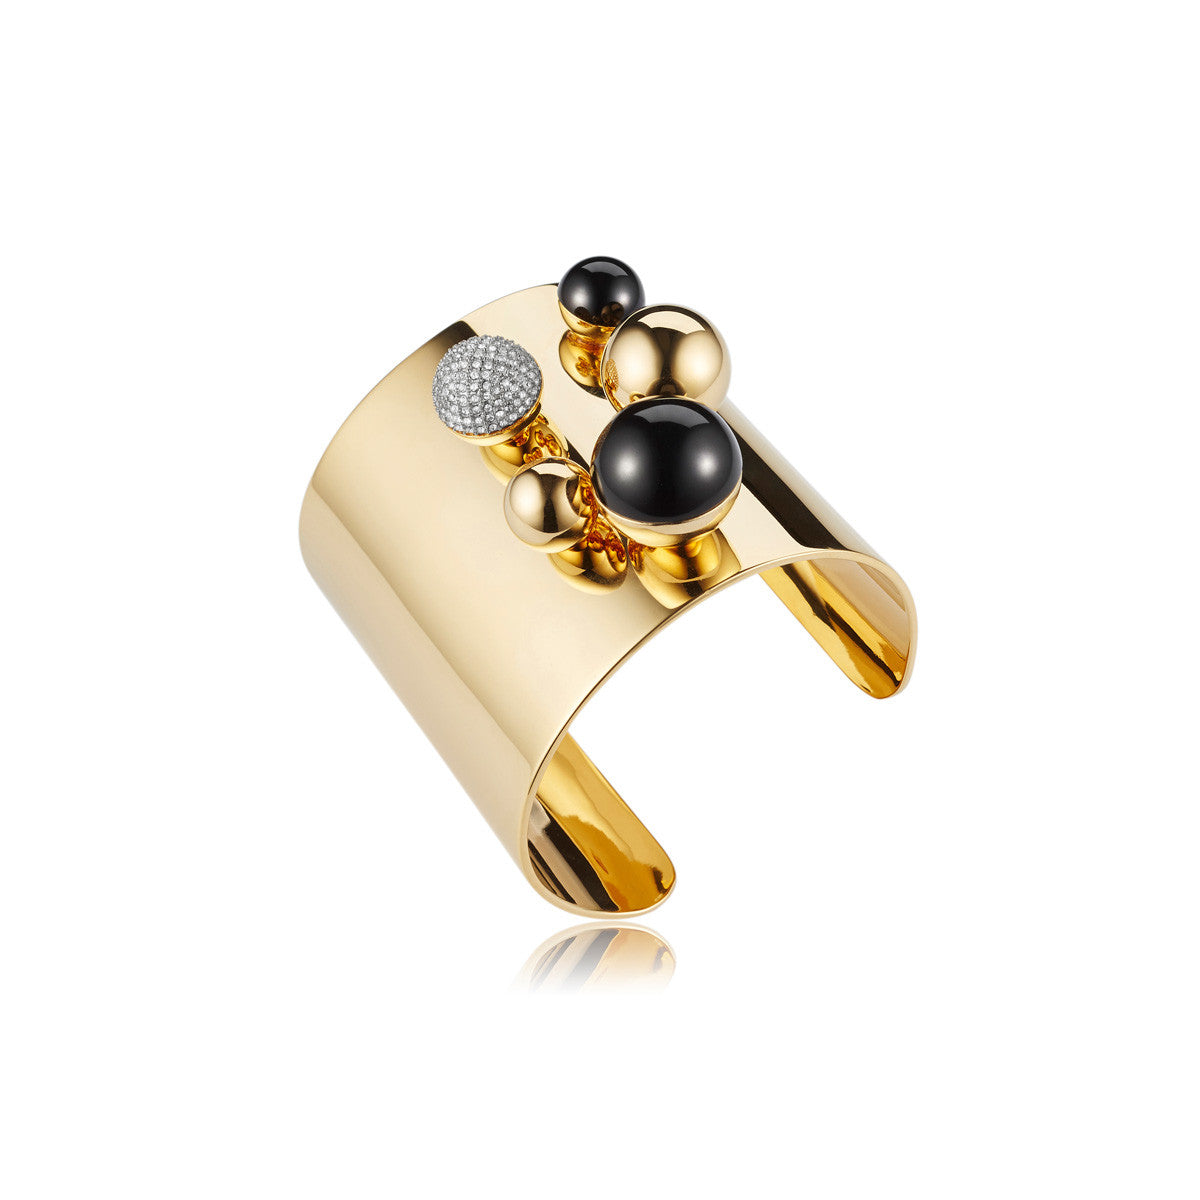 Solid brass, 18K gold plated Stellatus cuff bangle is topped with a cluster of spheres in Swarovski® crystal pavè detailing and natural black onyx - side